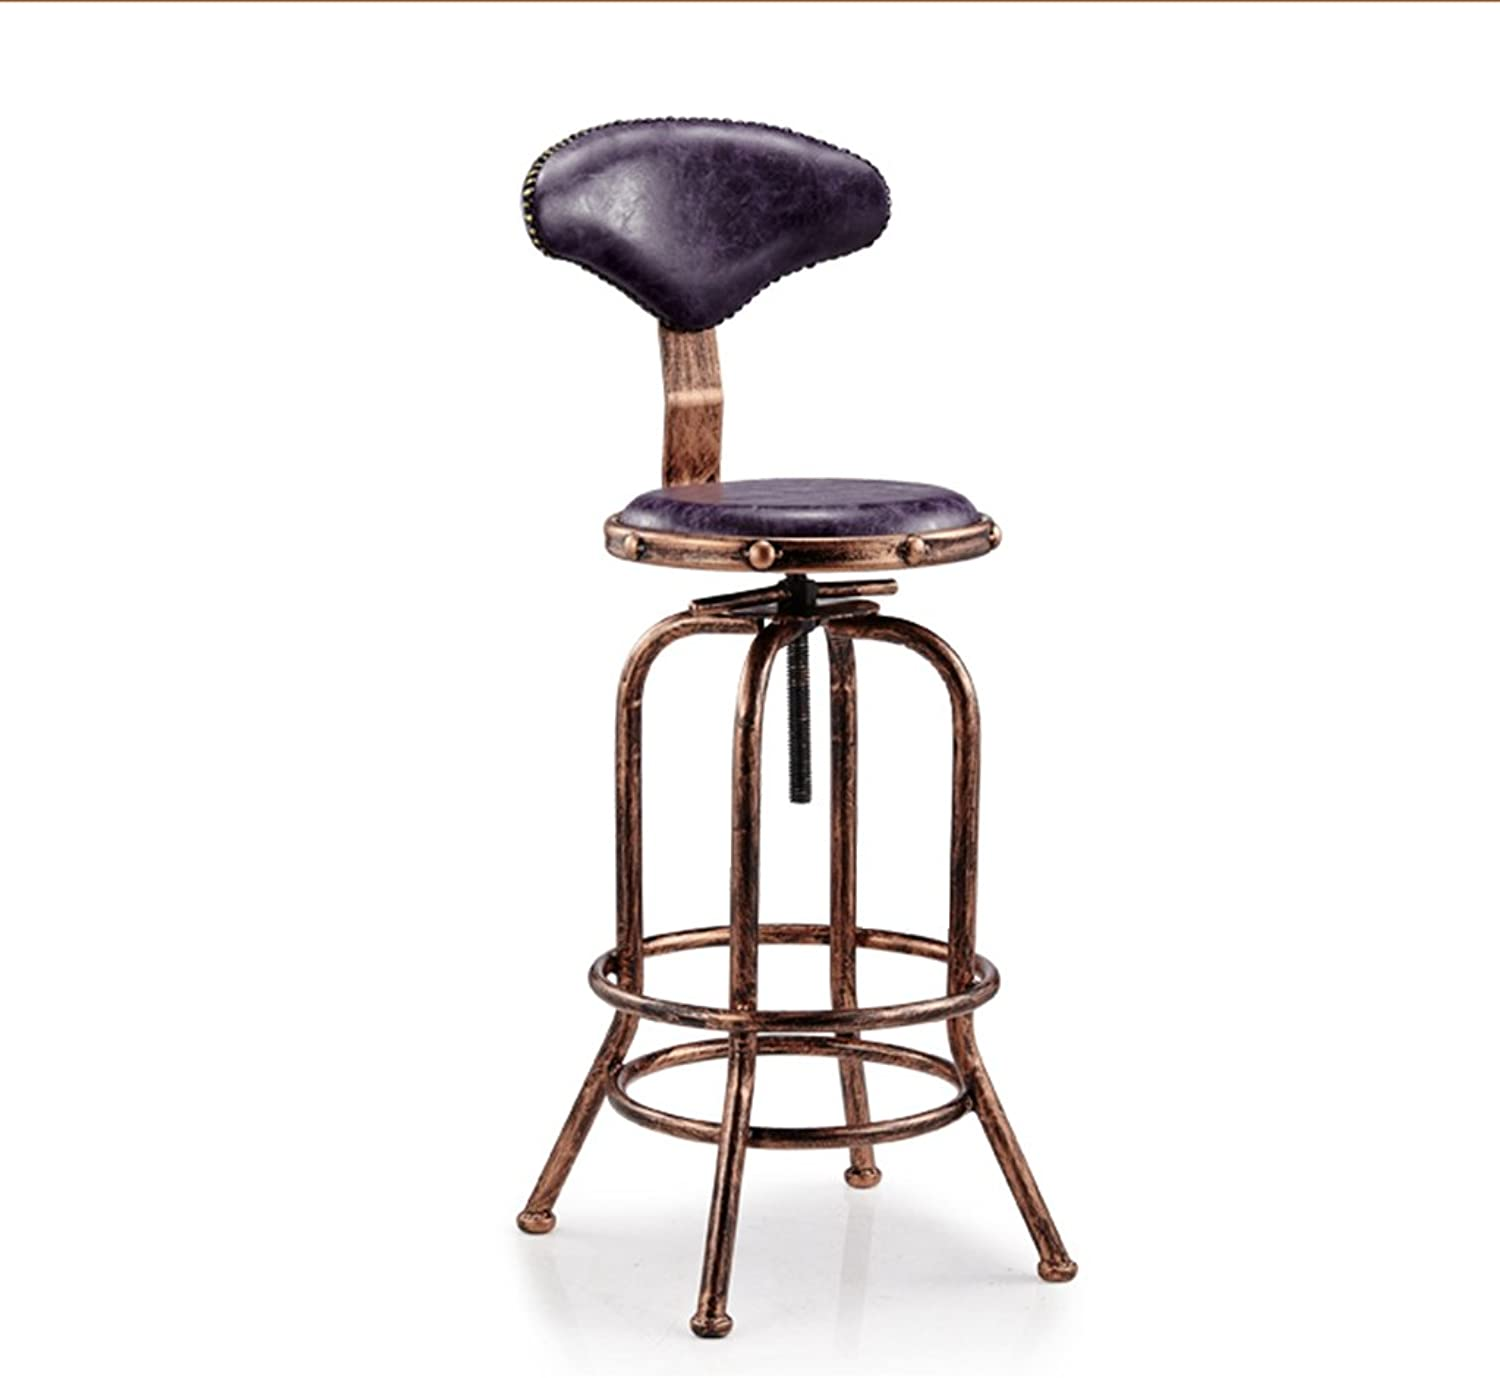 Vintage Bar Stools, Creativity Armchair Industrial Wind Bar Chair Front Desk Chair Cash Register Stool Coffee Chair Lift Stool redating Decoration High Stool (color   A)